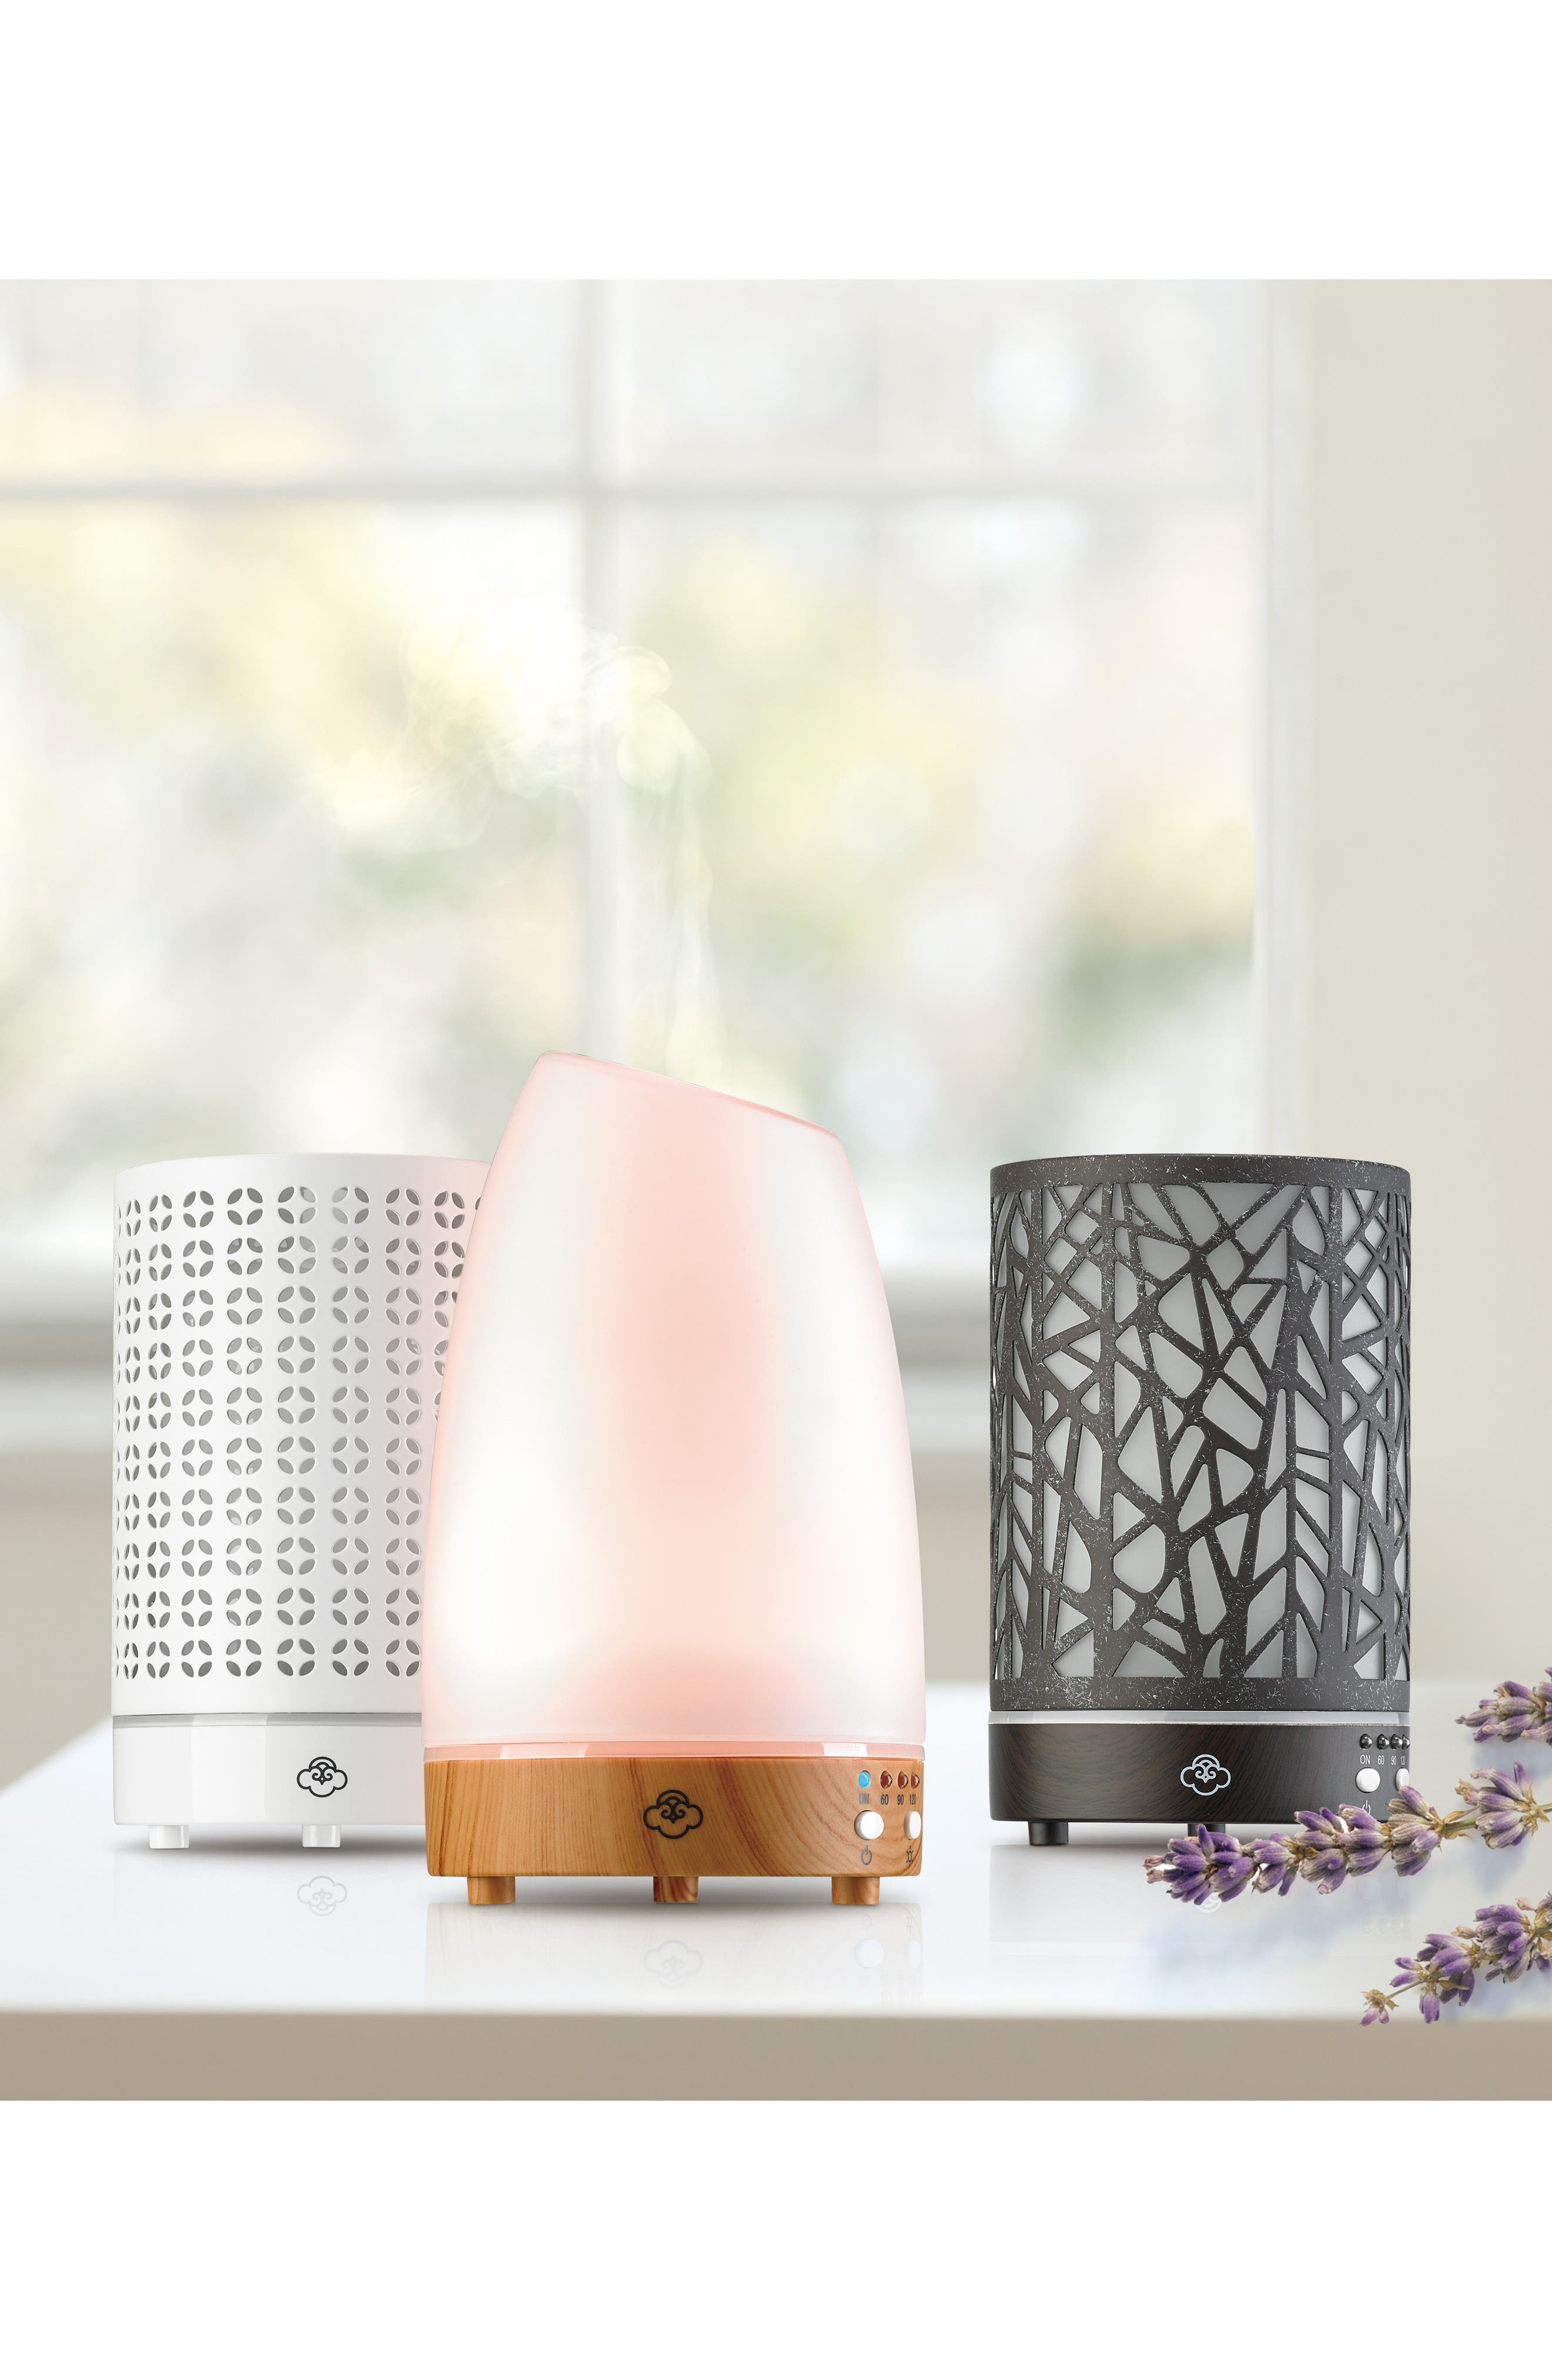 SERENE HOUSE, Cool Mist Cosmos Scentilizer Ultrasonic Aroma Diffuser, Alternate thumbnail 2, color, WHITE